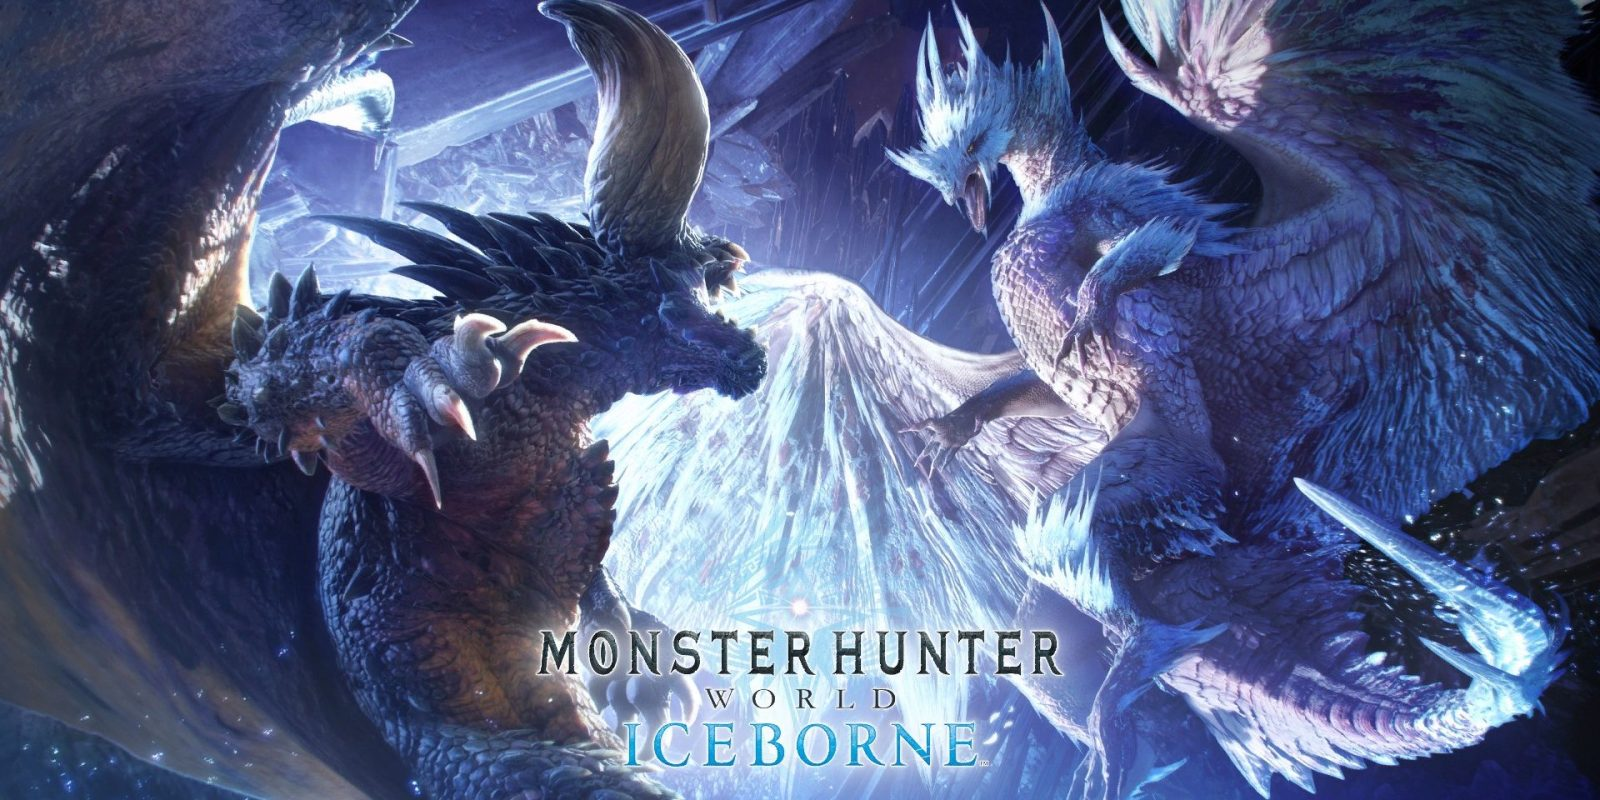 Today's Best Game Deals: Monster Hunter Iceborne Master $45, Darksiders III $10, more